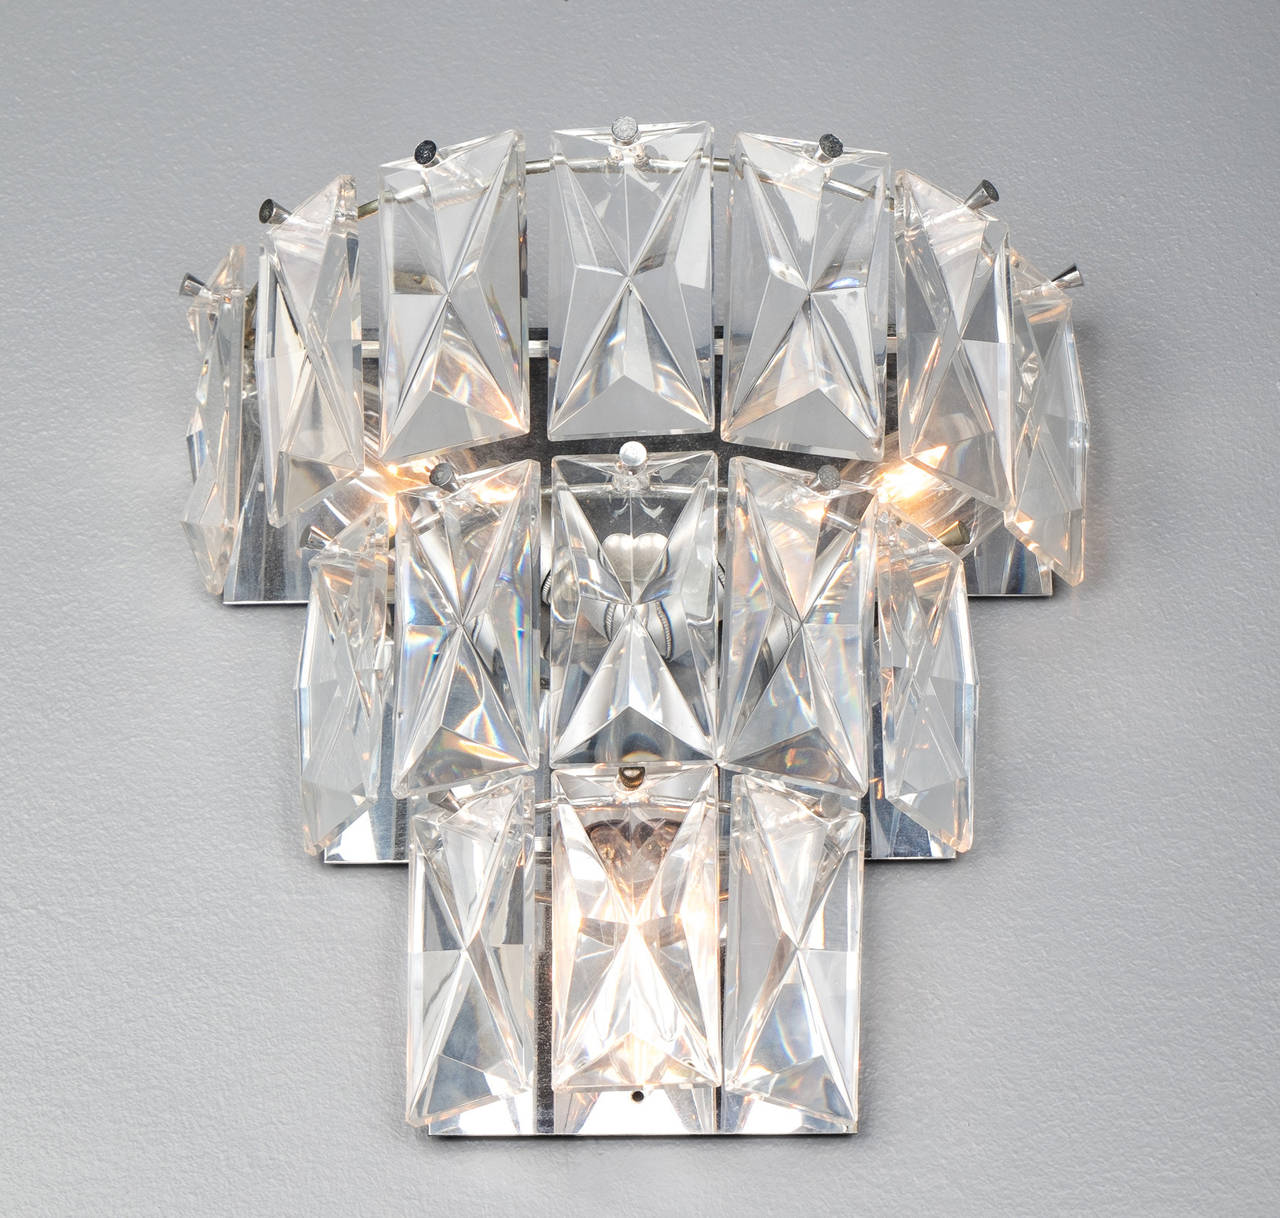 Wall Sconces With Crystal : Baccarat Crystal Wall Sconce at 1stdibs